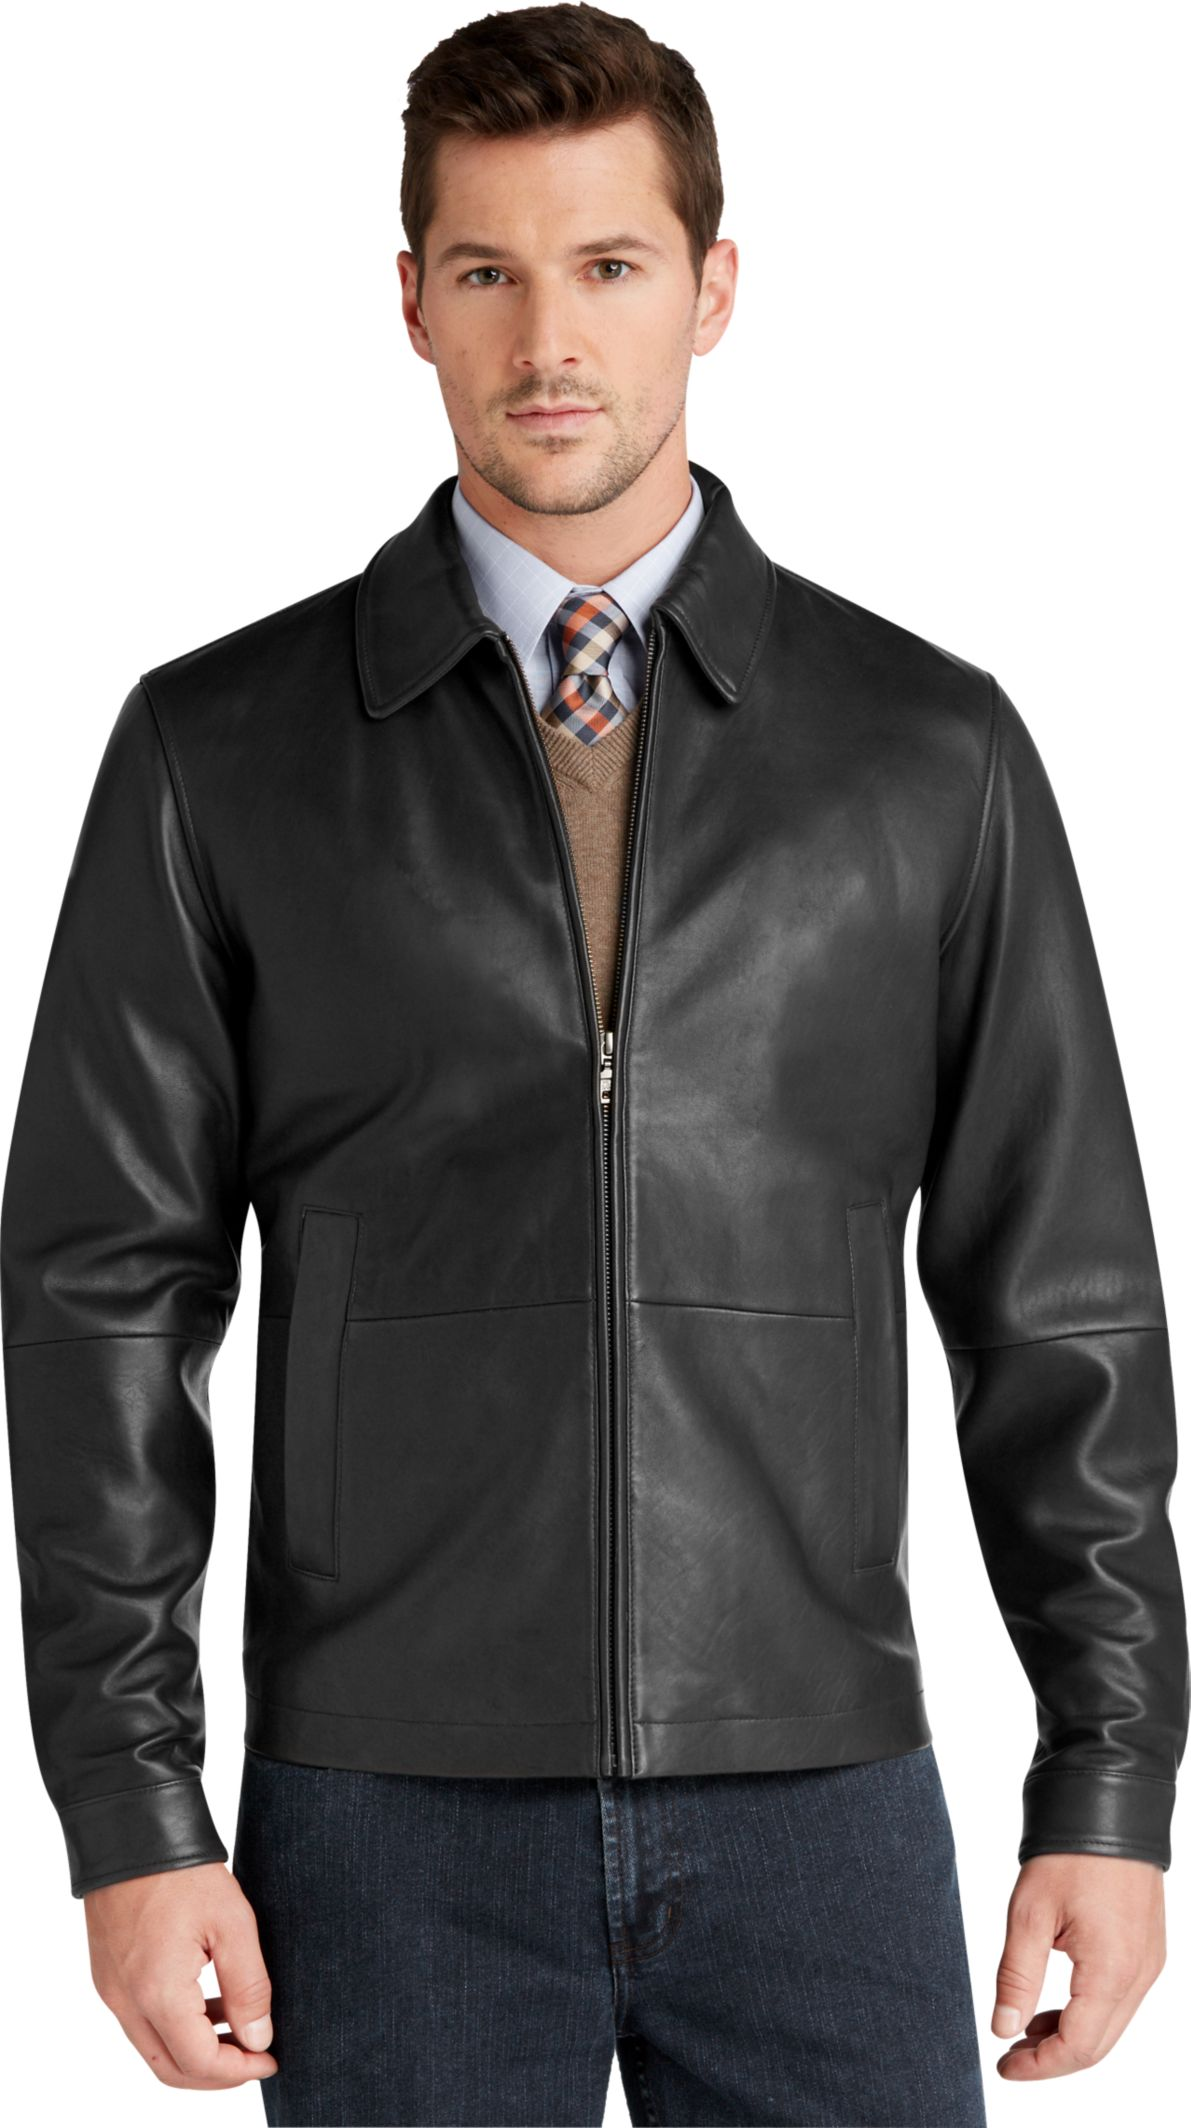 For weekend ventures, check out a more hip, laid-back vibe with a hooded leather jacket in luxe brown. Try out a go-anywhere take on an iconic style with a soft fabric shell finished by faux-leather trim from MICHAEL Michael Kors. Have Some Fun Colors and details offer a great chance to make a statement.